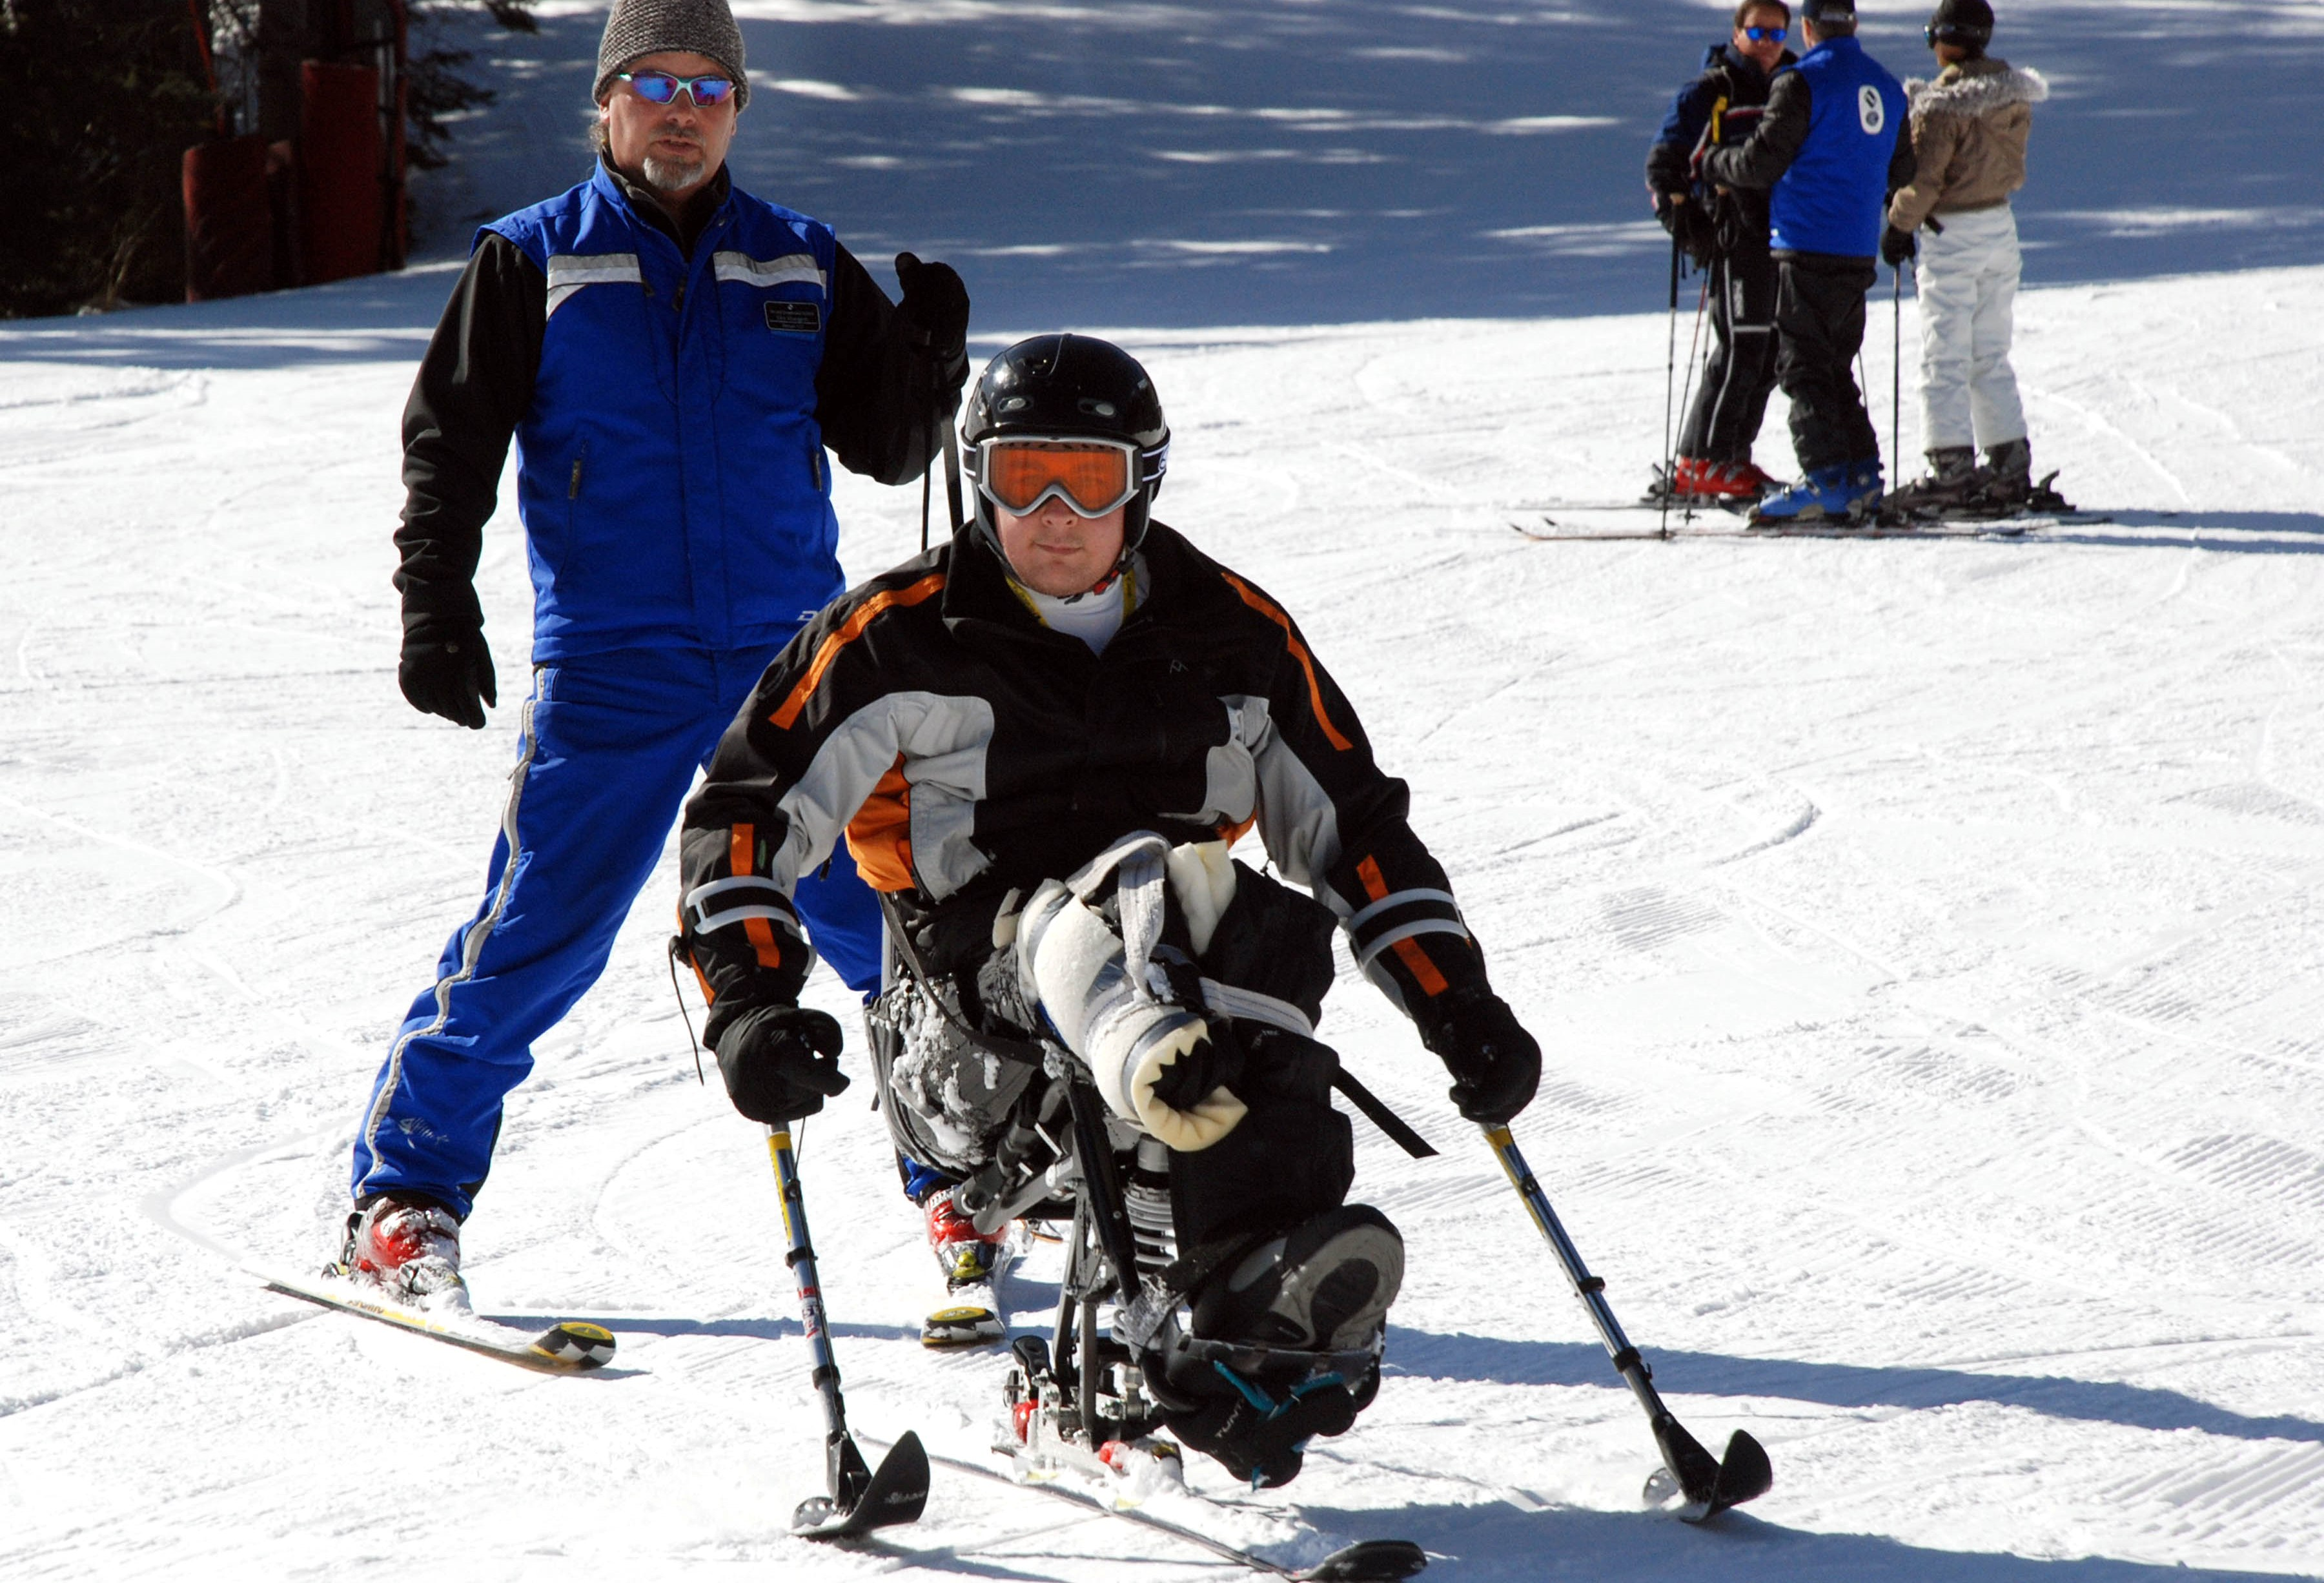 Sgt. Anthony Larson, his adaptive ski instructor close behind, skis down the beginner's hill in his mono-ski March 9, 2007 in Vail, Colo. Larson lost his right leg below the knee while serving in Iraq. The private mono-ski lesson is part of the Vail Veterans Program's winter sports clinic. Defense Dept. photo by Samantha L. Quigley